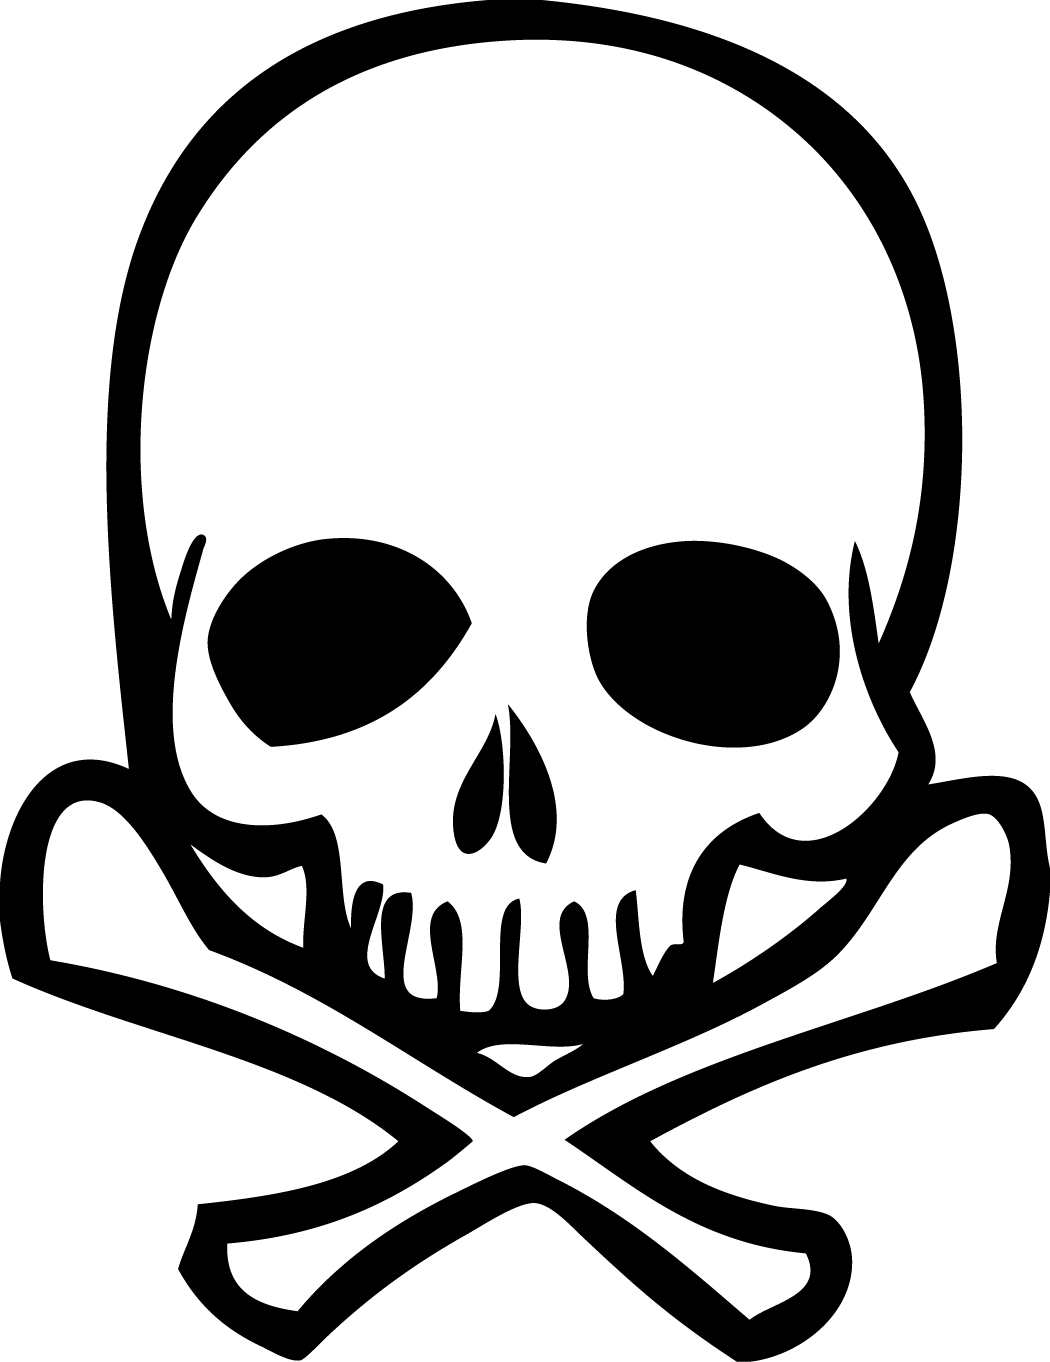 Waffen Ss Symbol Skulls PNG Image - Pur...